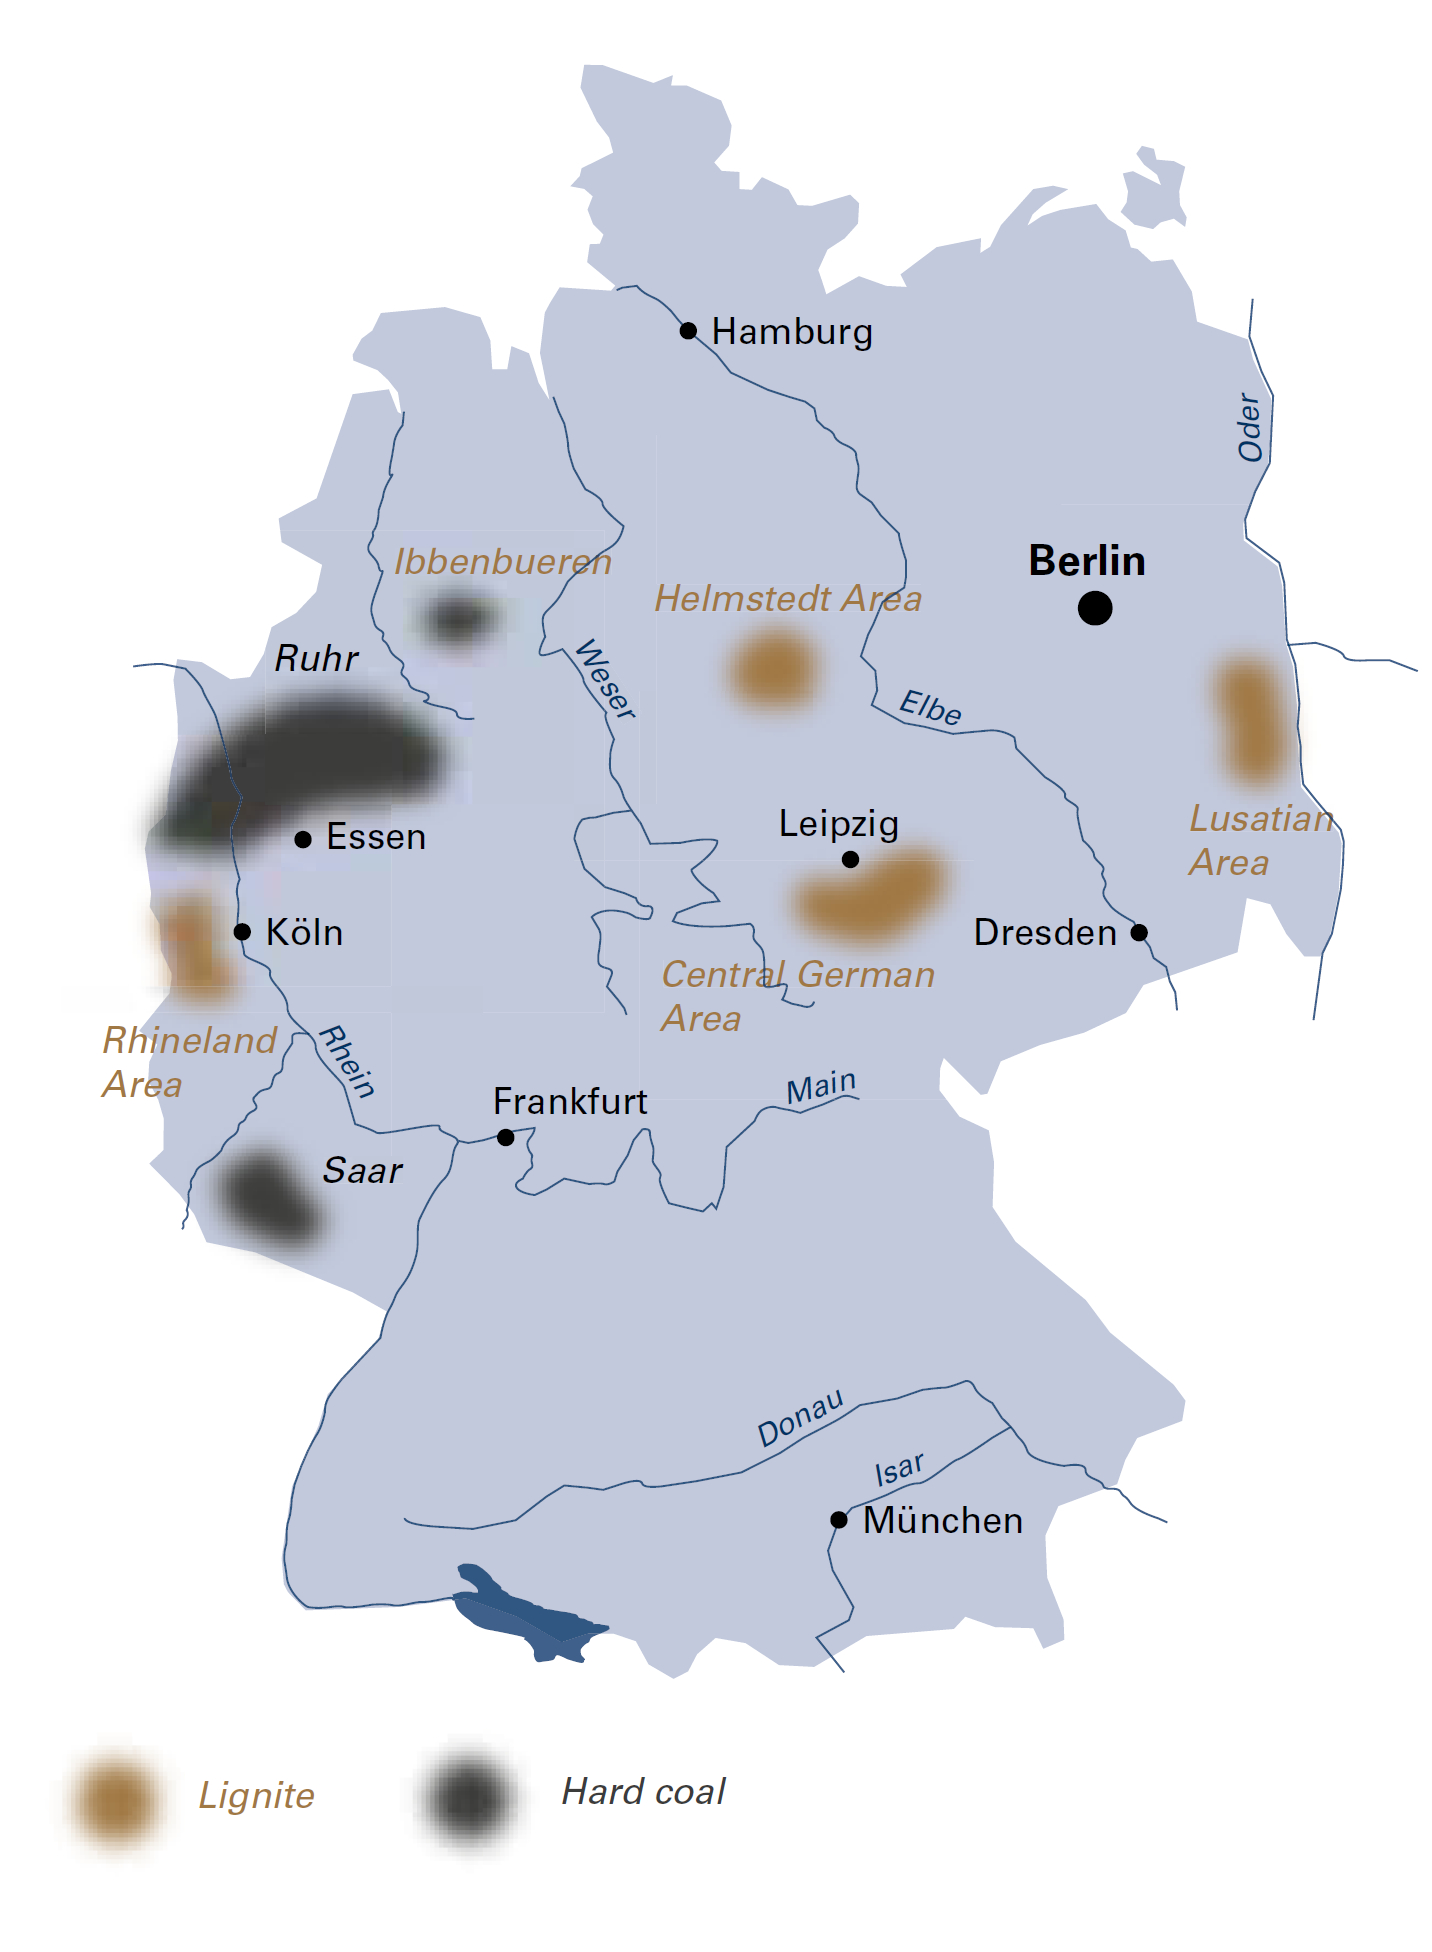 Germany the voice of coal in Europe